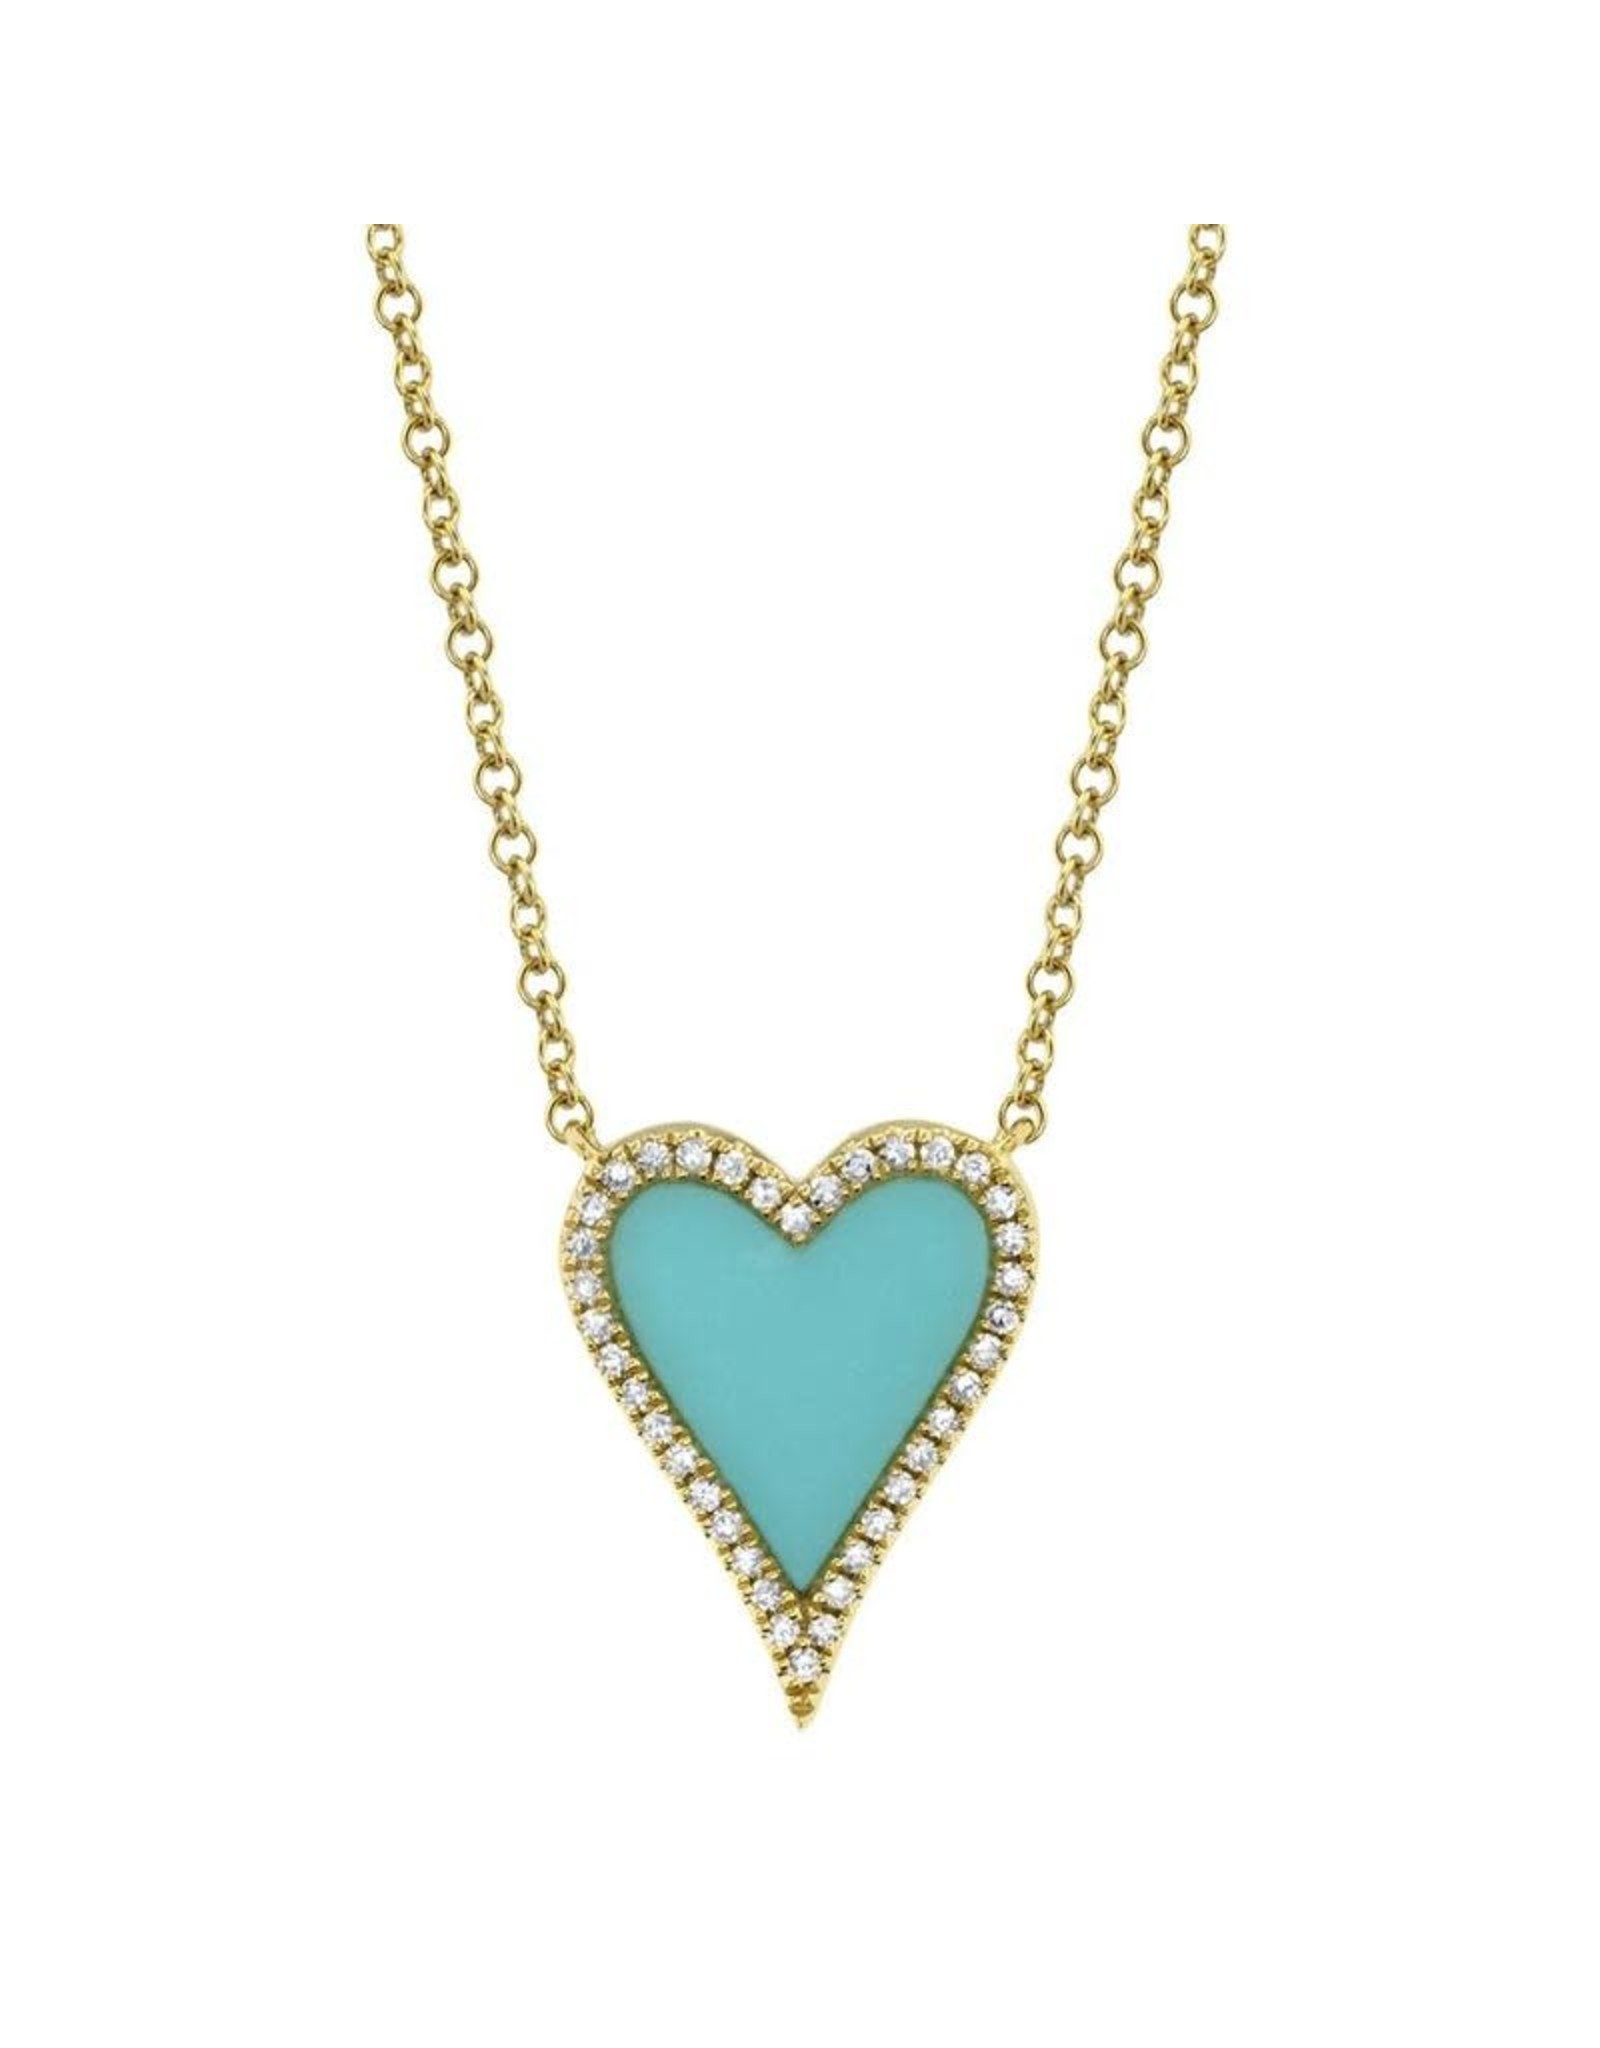 14K Yellow Gold Small Turquoise & Diamond Heart Necklace, TQ: 0.69ct, D: 0.09ct